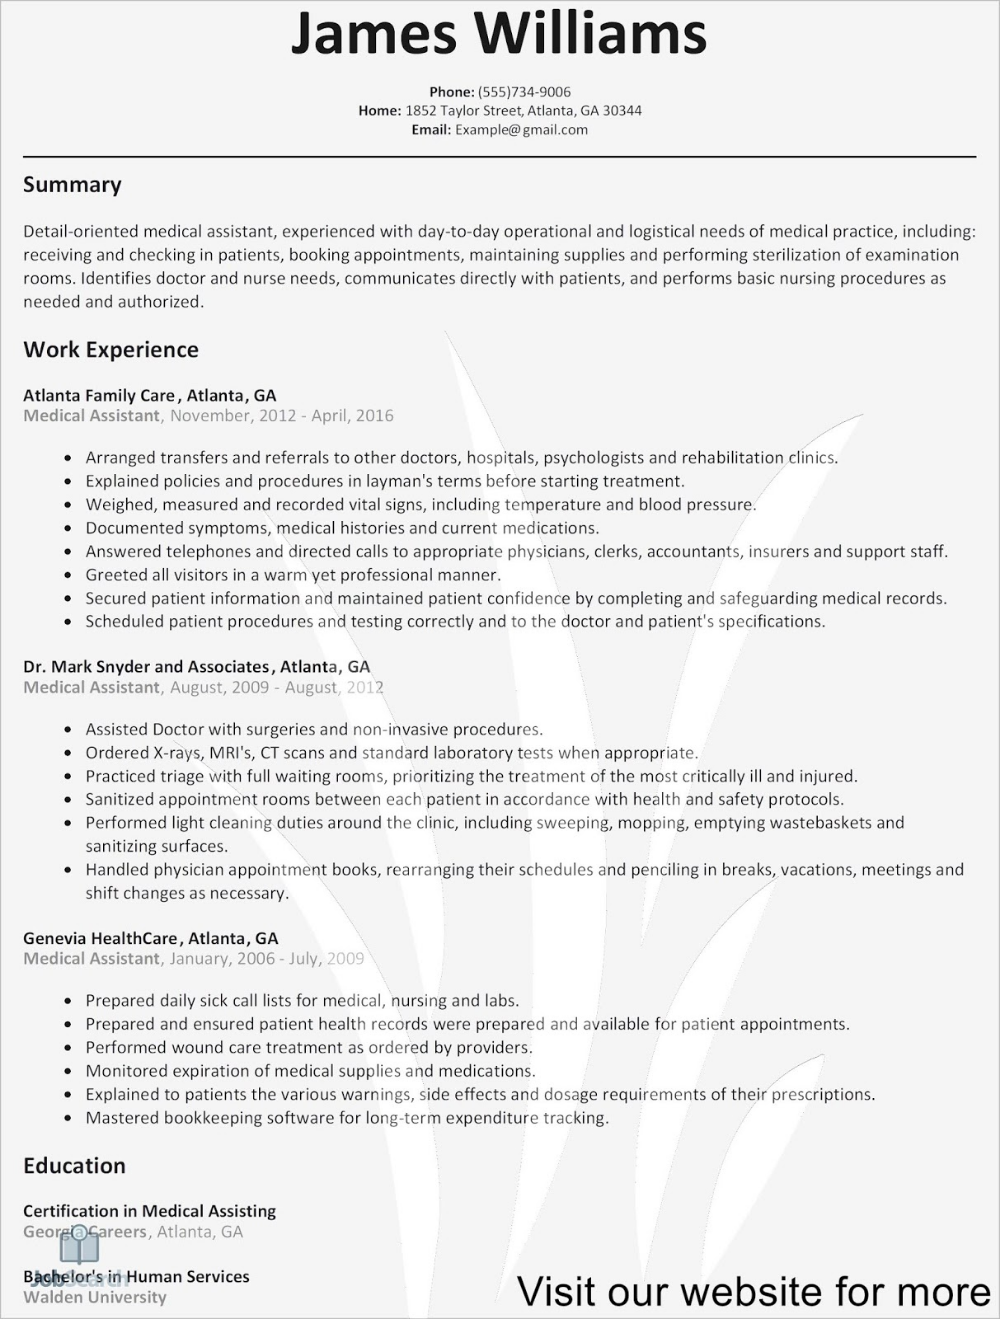 healthcare resume templates healthcare resume templates